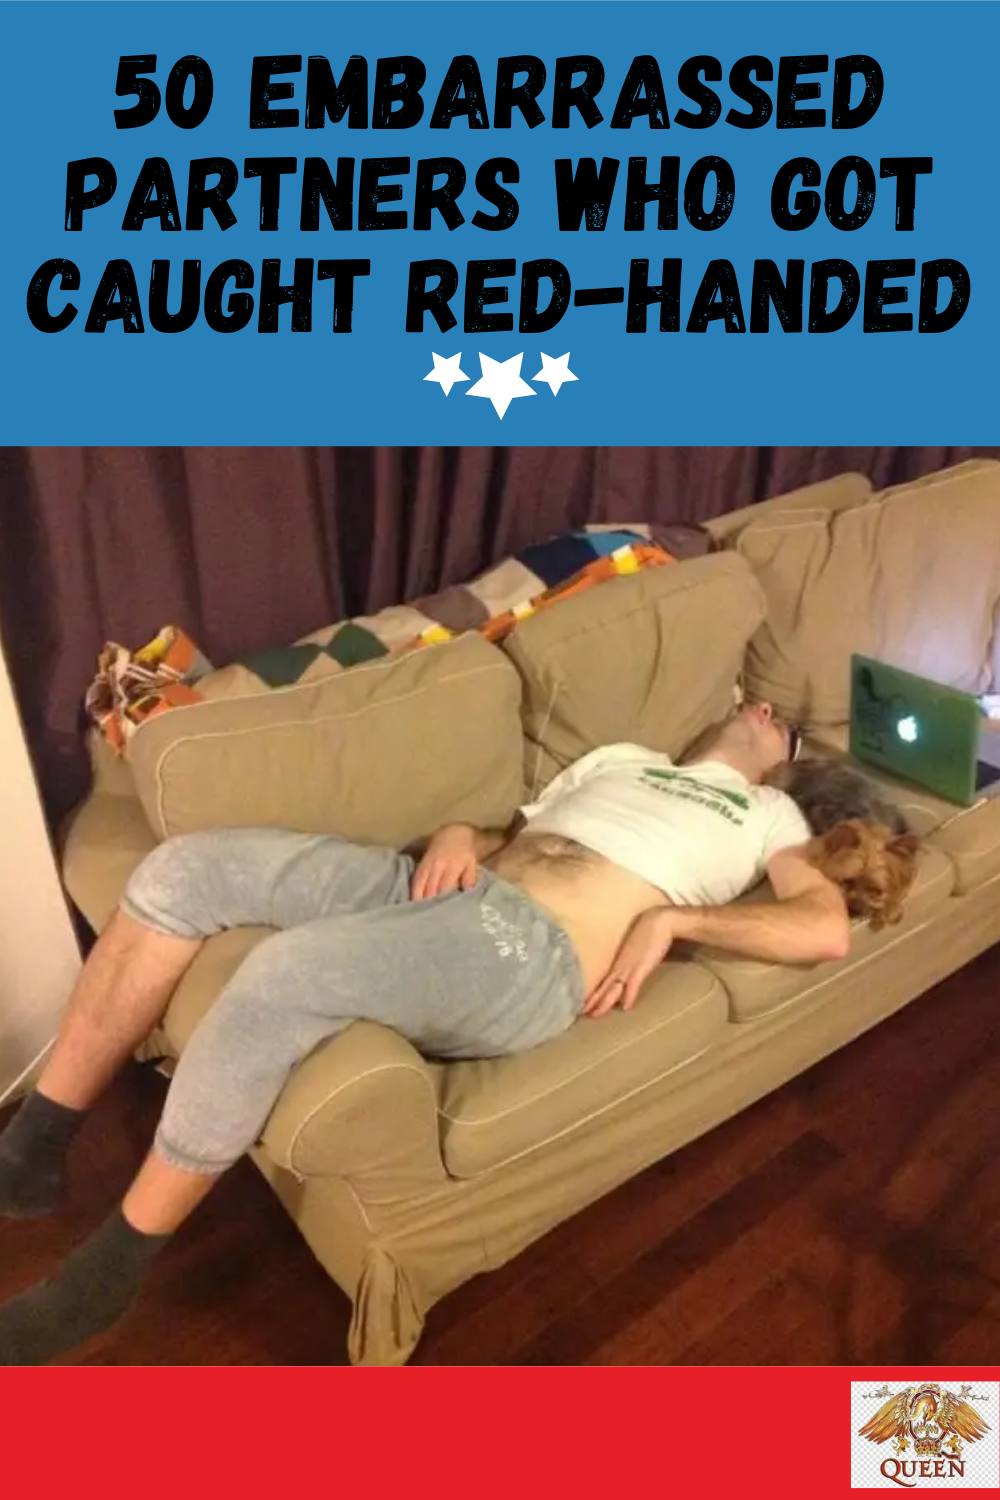 50 Embarrassed Partners Who Got Caught Red-Handed